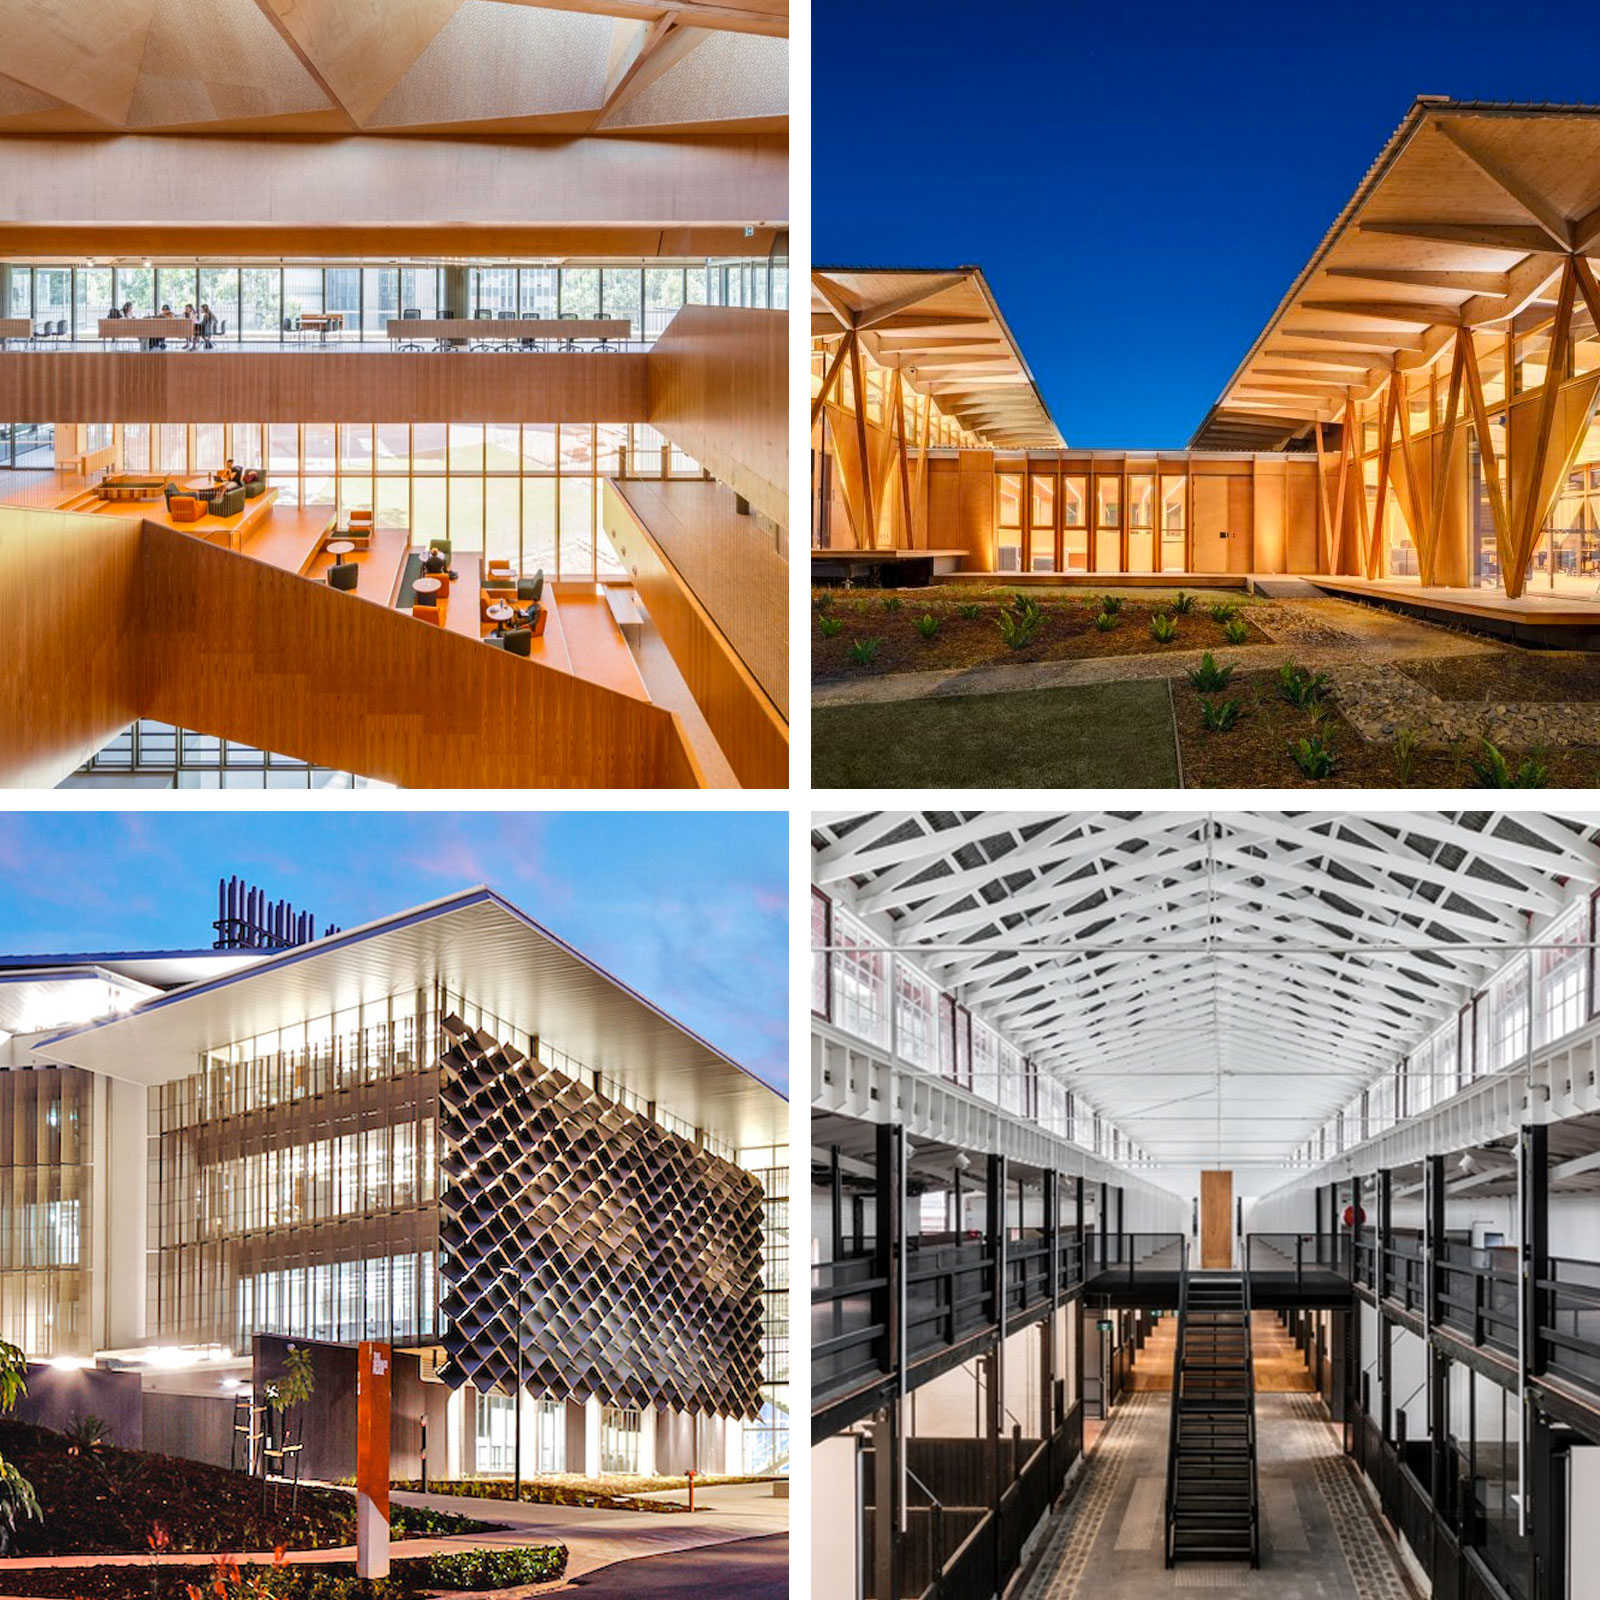 Monash University Learning and Teaching Building (top left), Macquarie University Incubator (top right), The Science Place (bottom left) and Victorian College of the Arts former Mounted Police Stables (bottom right).